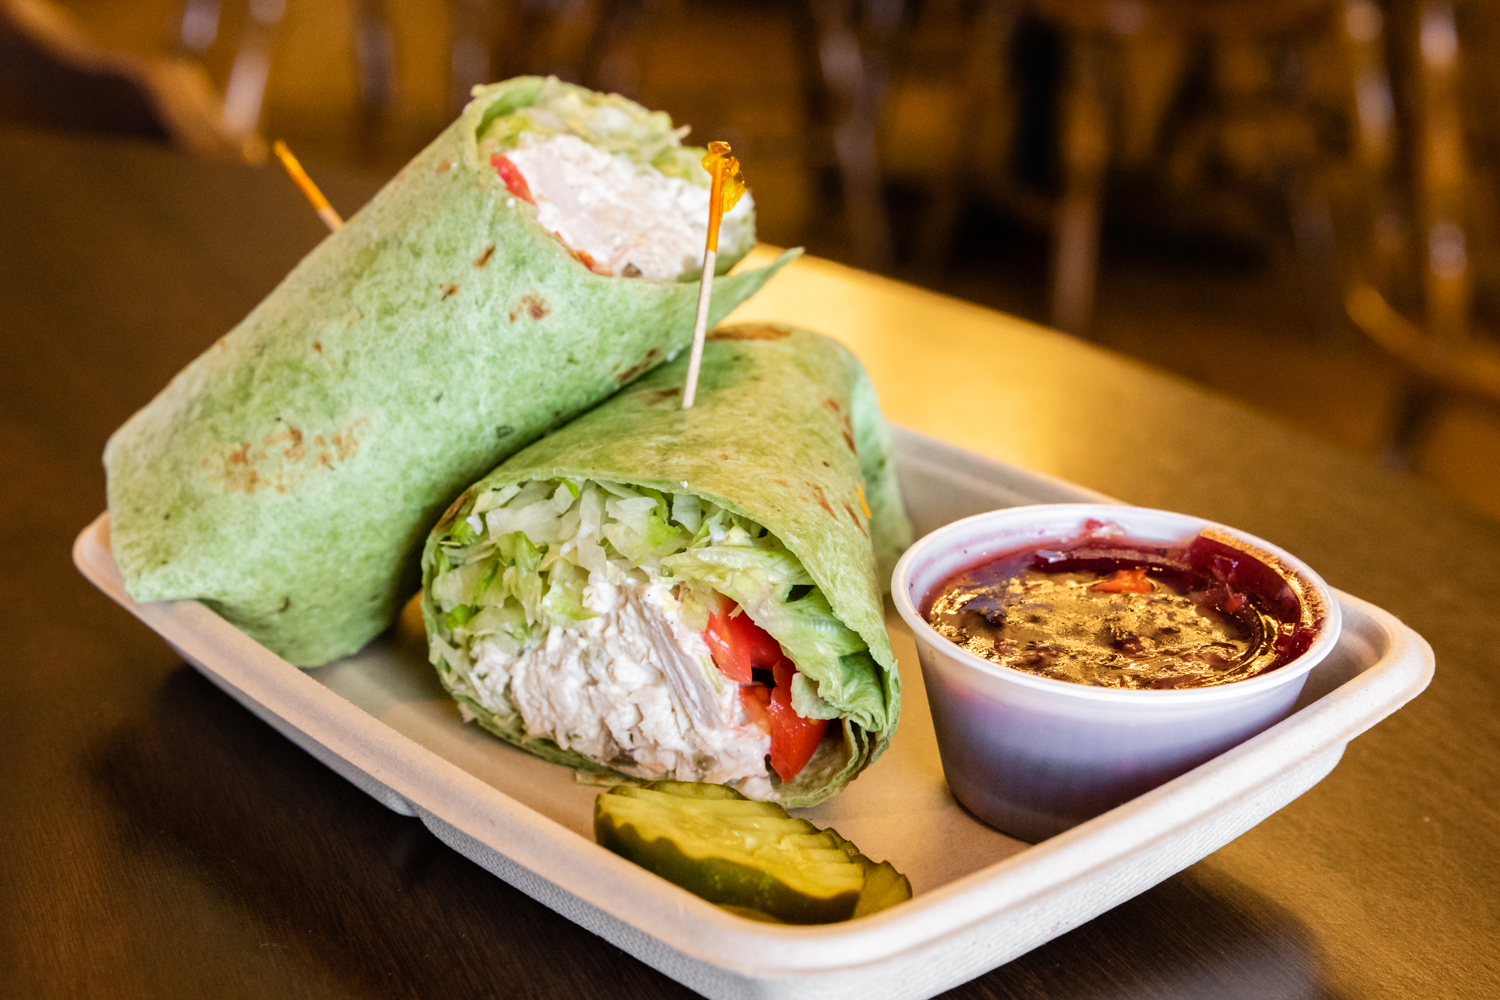 Turkey salad wrap. Spinach herb wrap with turkey, lettuce, tomatoes, mayonnaise.